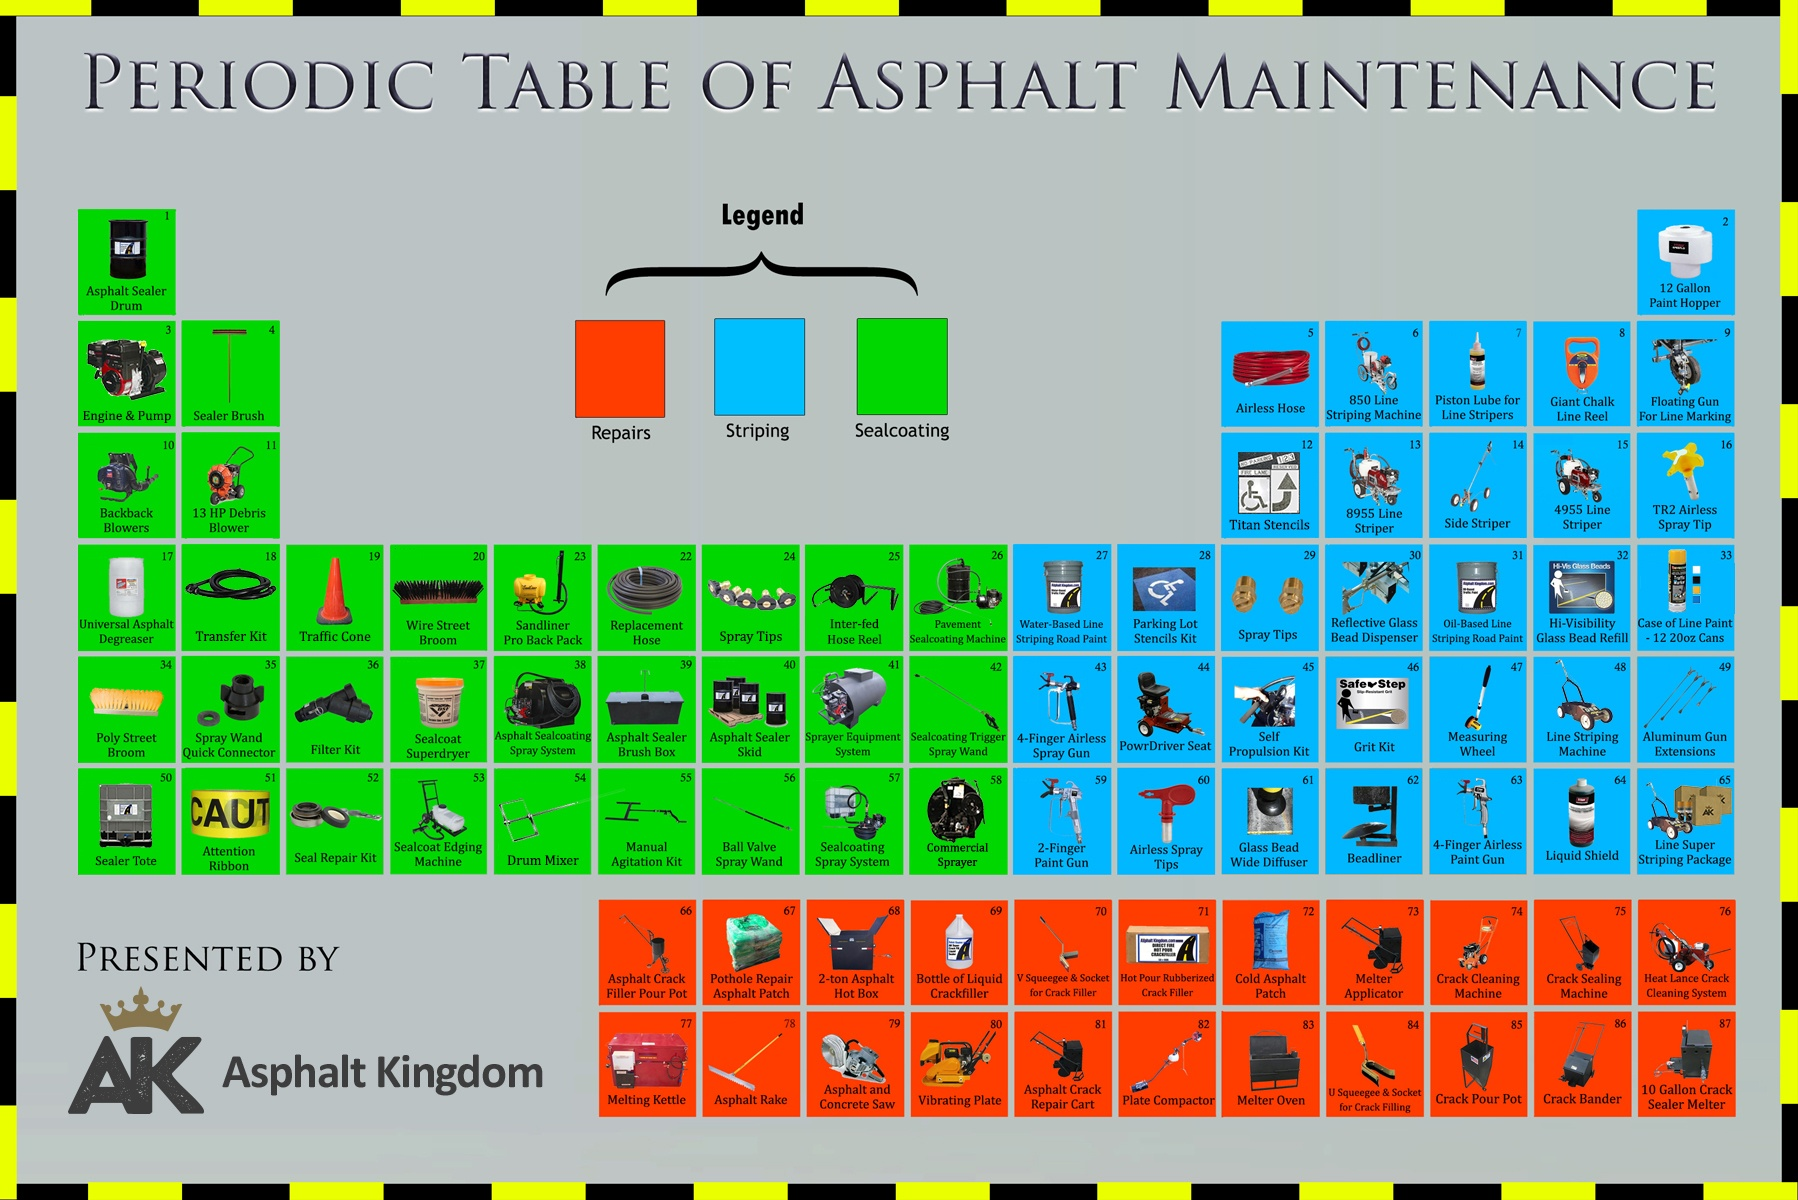 Periodic Table of Asphalt Maintenance